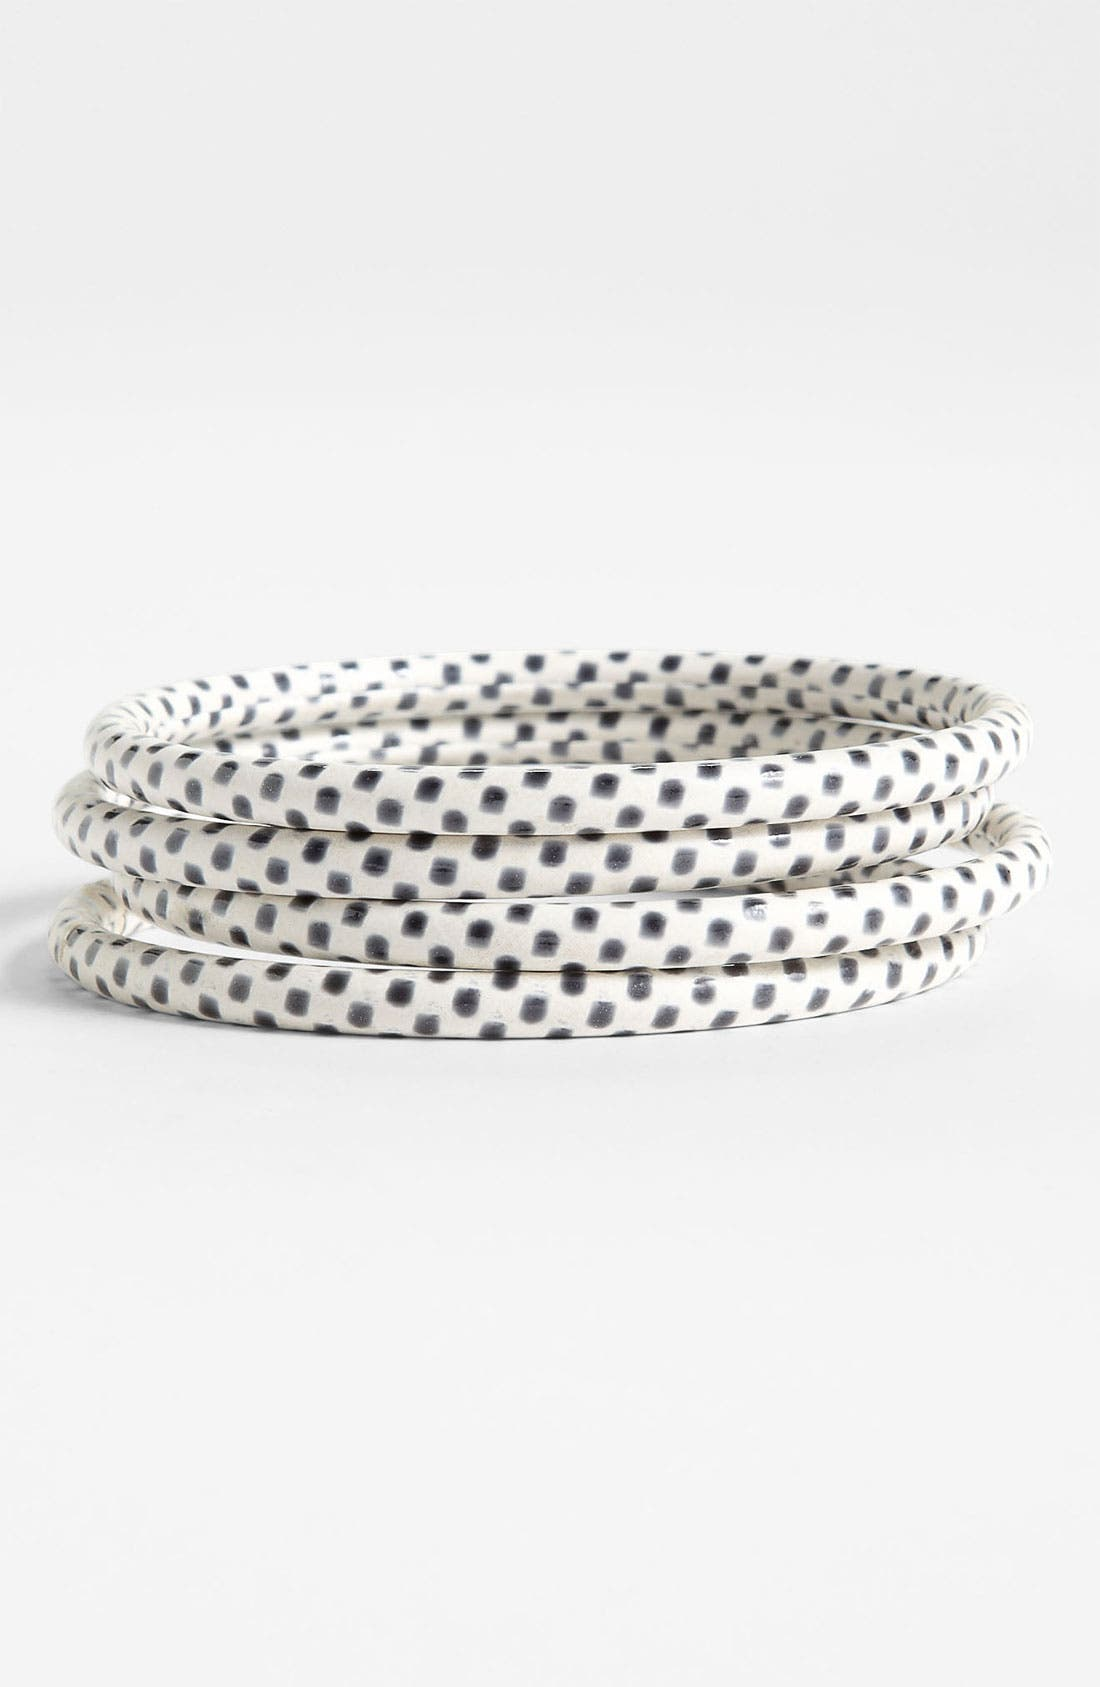 Main Image - Chamak by Priya Kakkar Polka Dot Bangles (Set of 4)